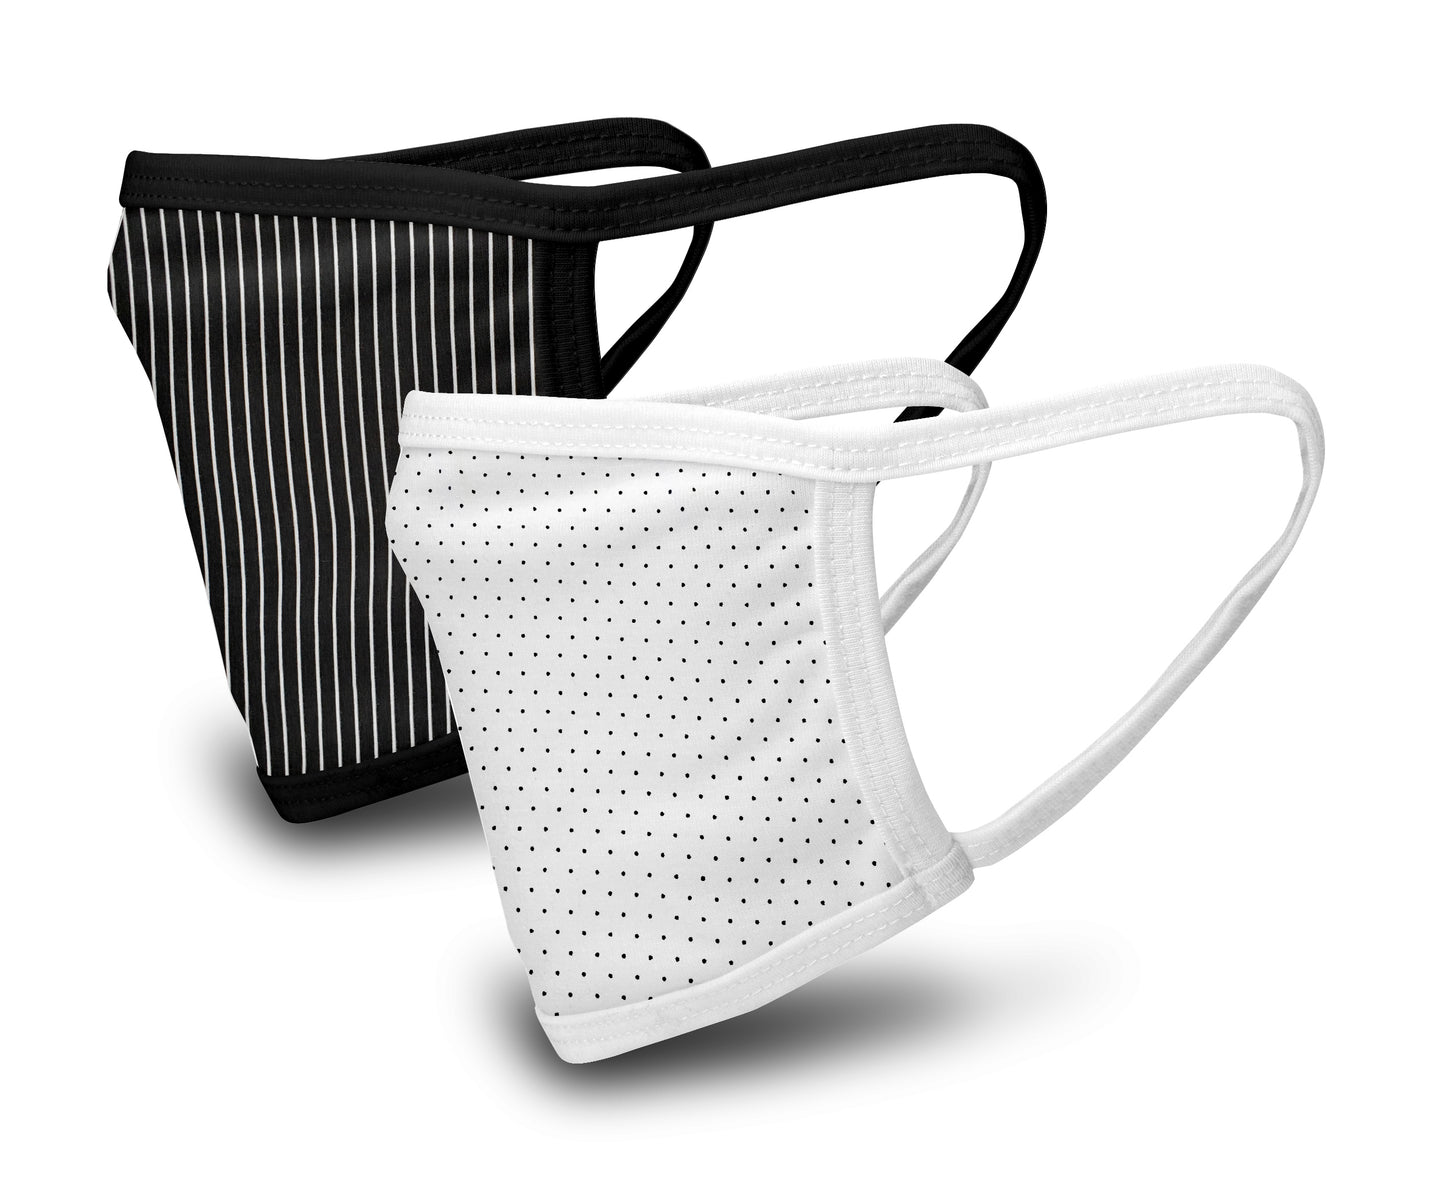 White and Black Print 2 Pack Face Mask - Reusable & Washable - Antimicrobial Finish - USA Made